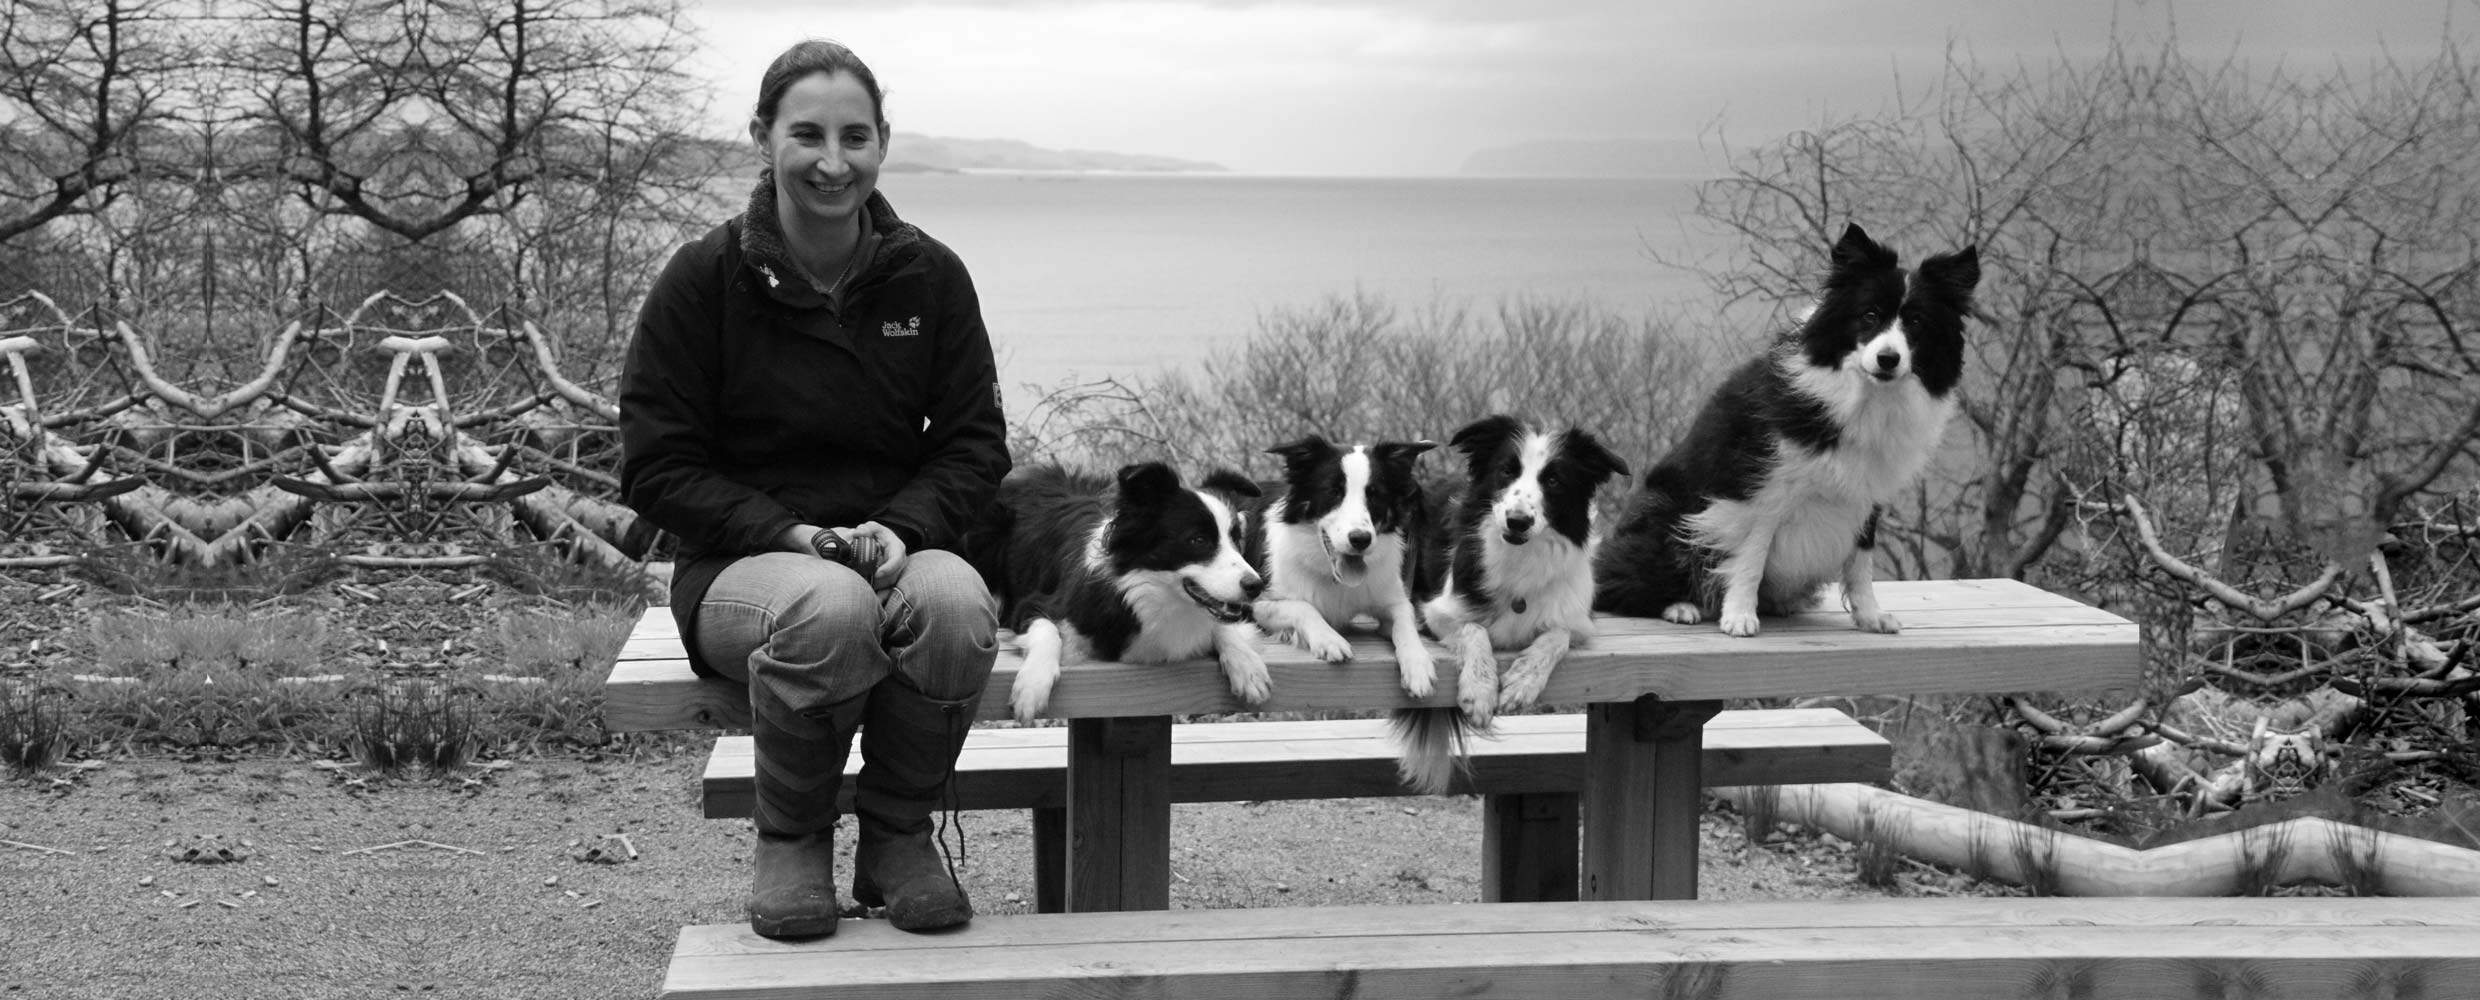 Alison Roets and her Border Collies on a picnic table in Scotland